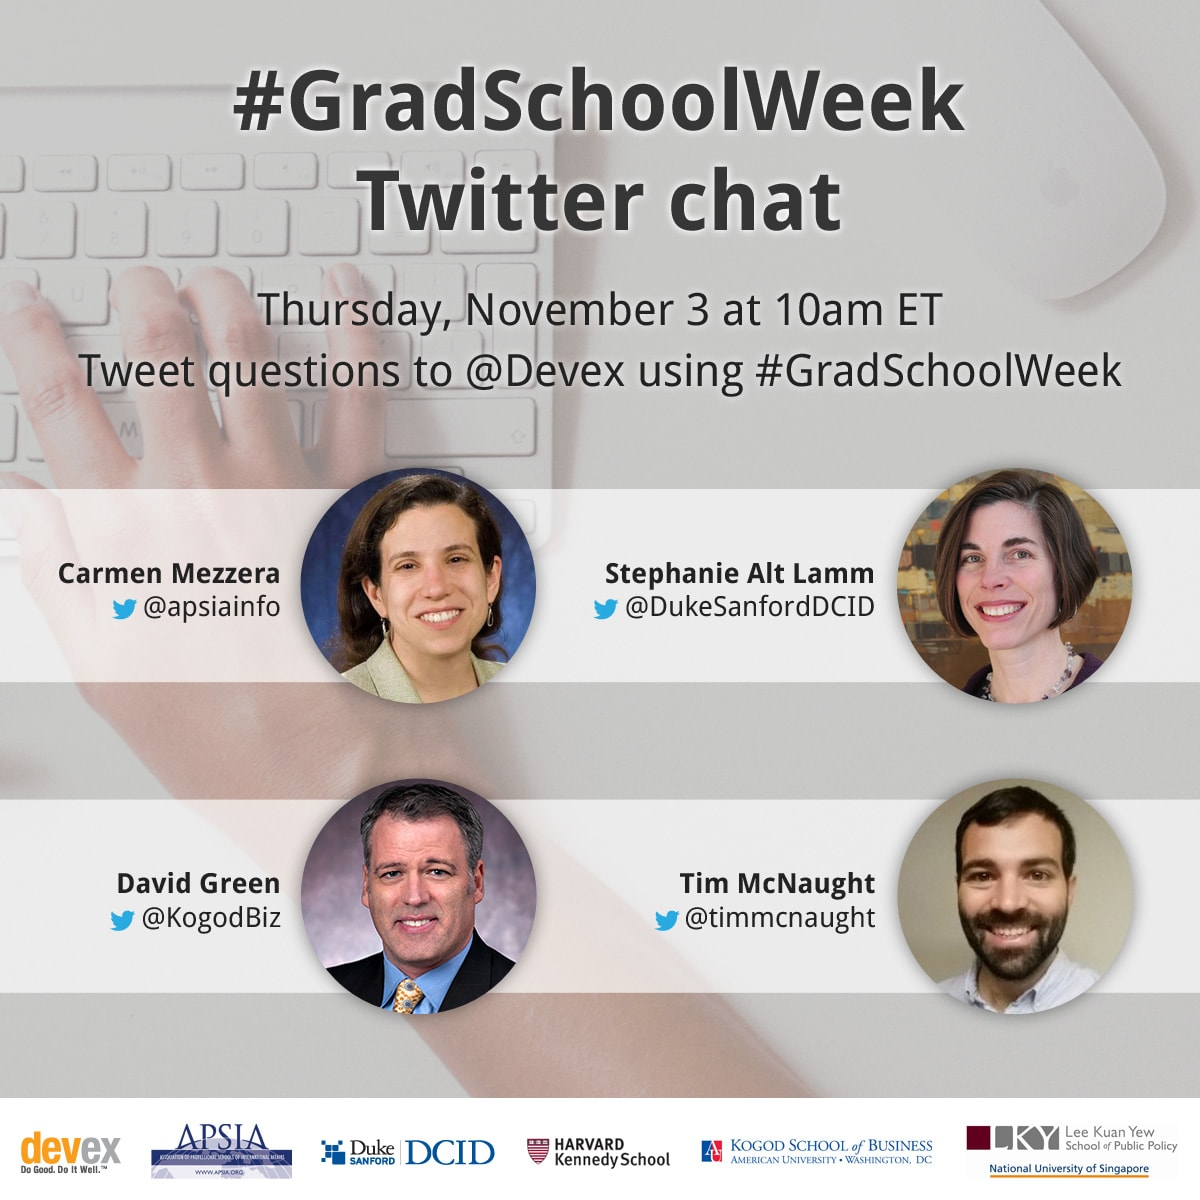 Grad school week graphics tw chat  1200x1200 v5